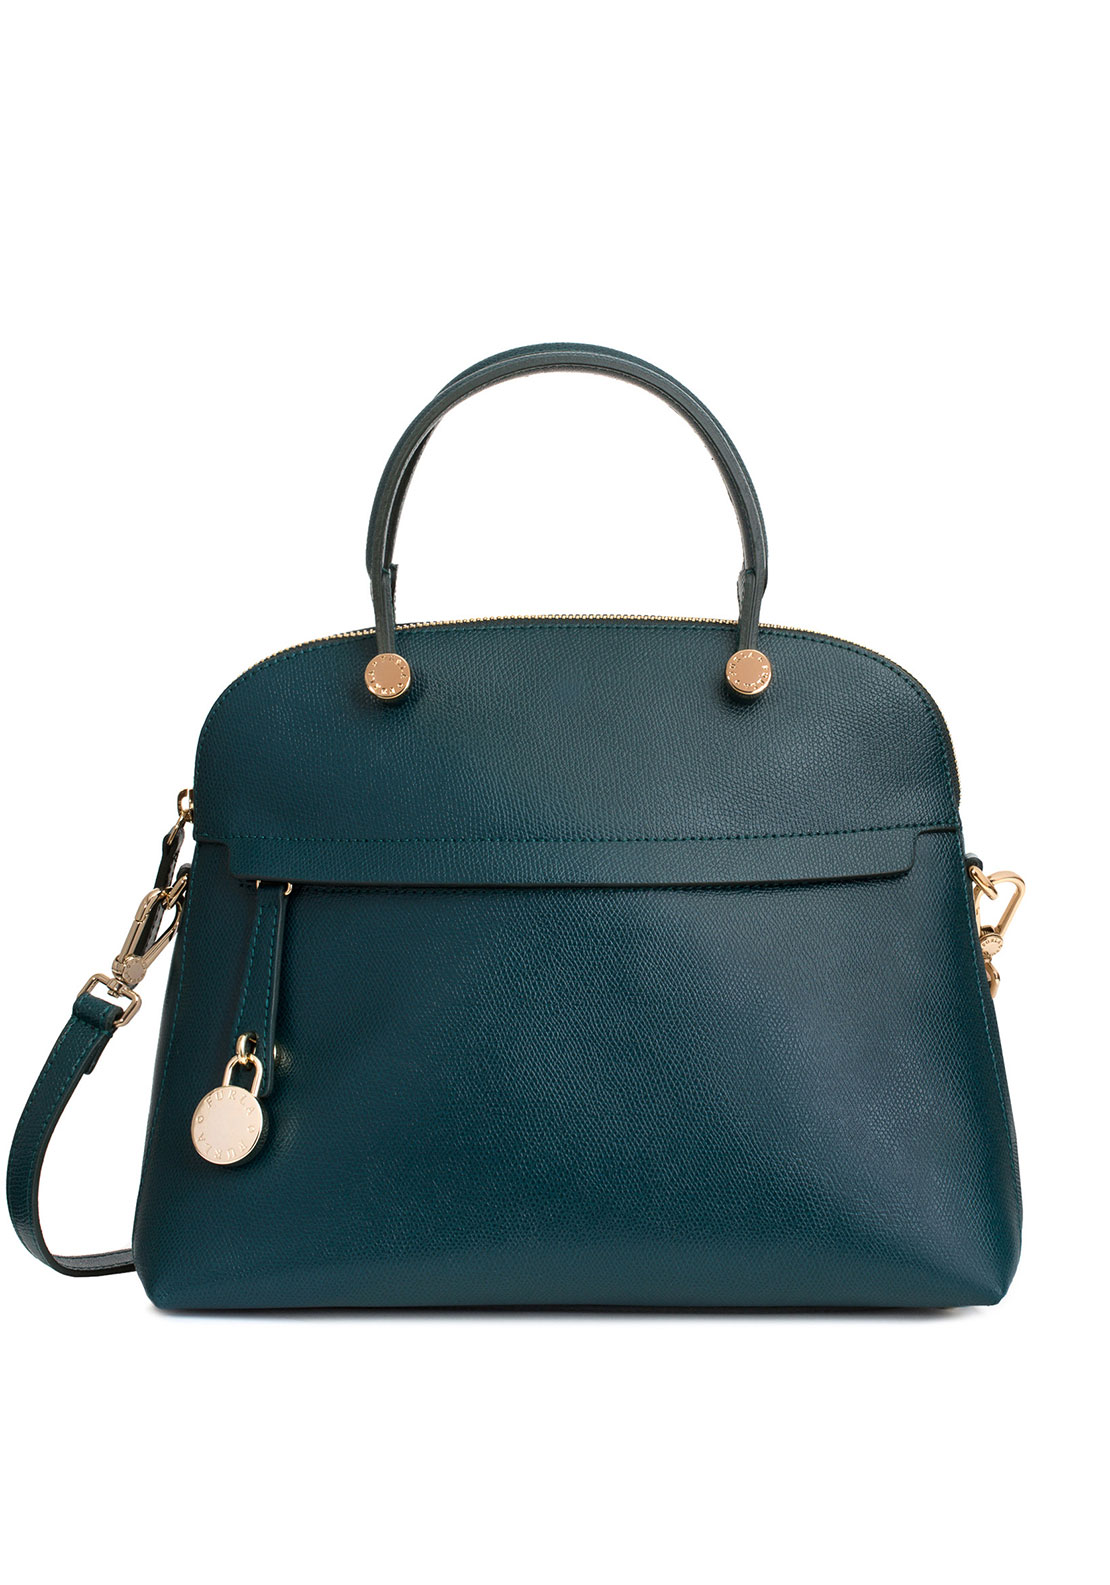 Furla Piper Top Handle Medium, Teal Green